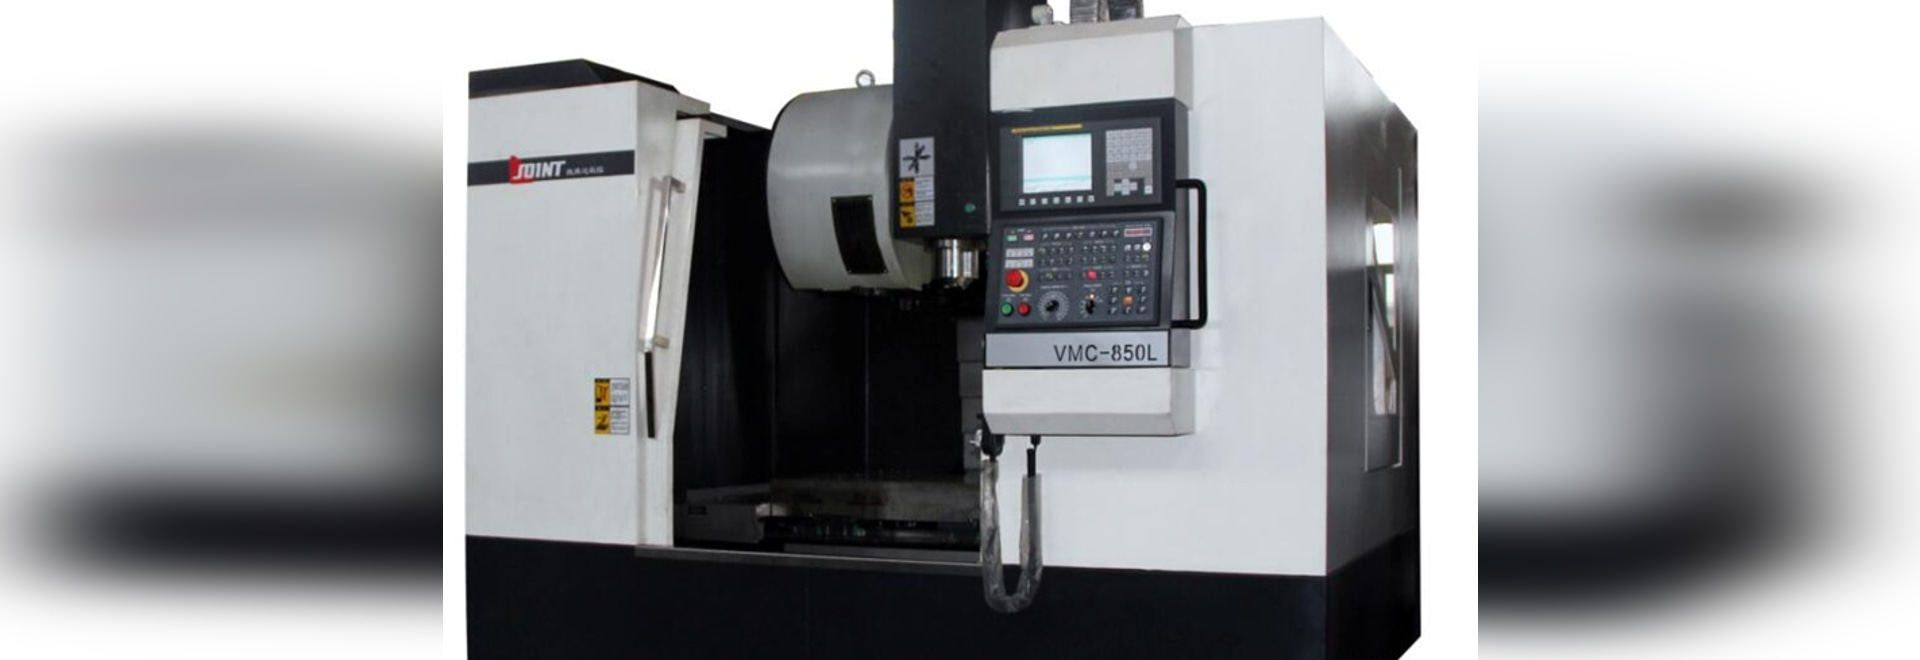 3 Axis 4 Axis 5 Axis Cnc Vertical Machining Center VMC850L For Sale